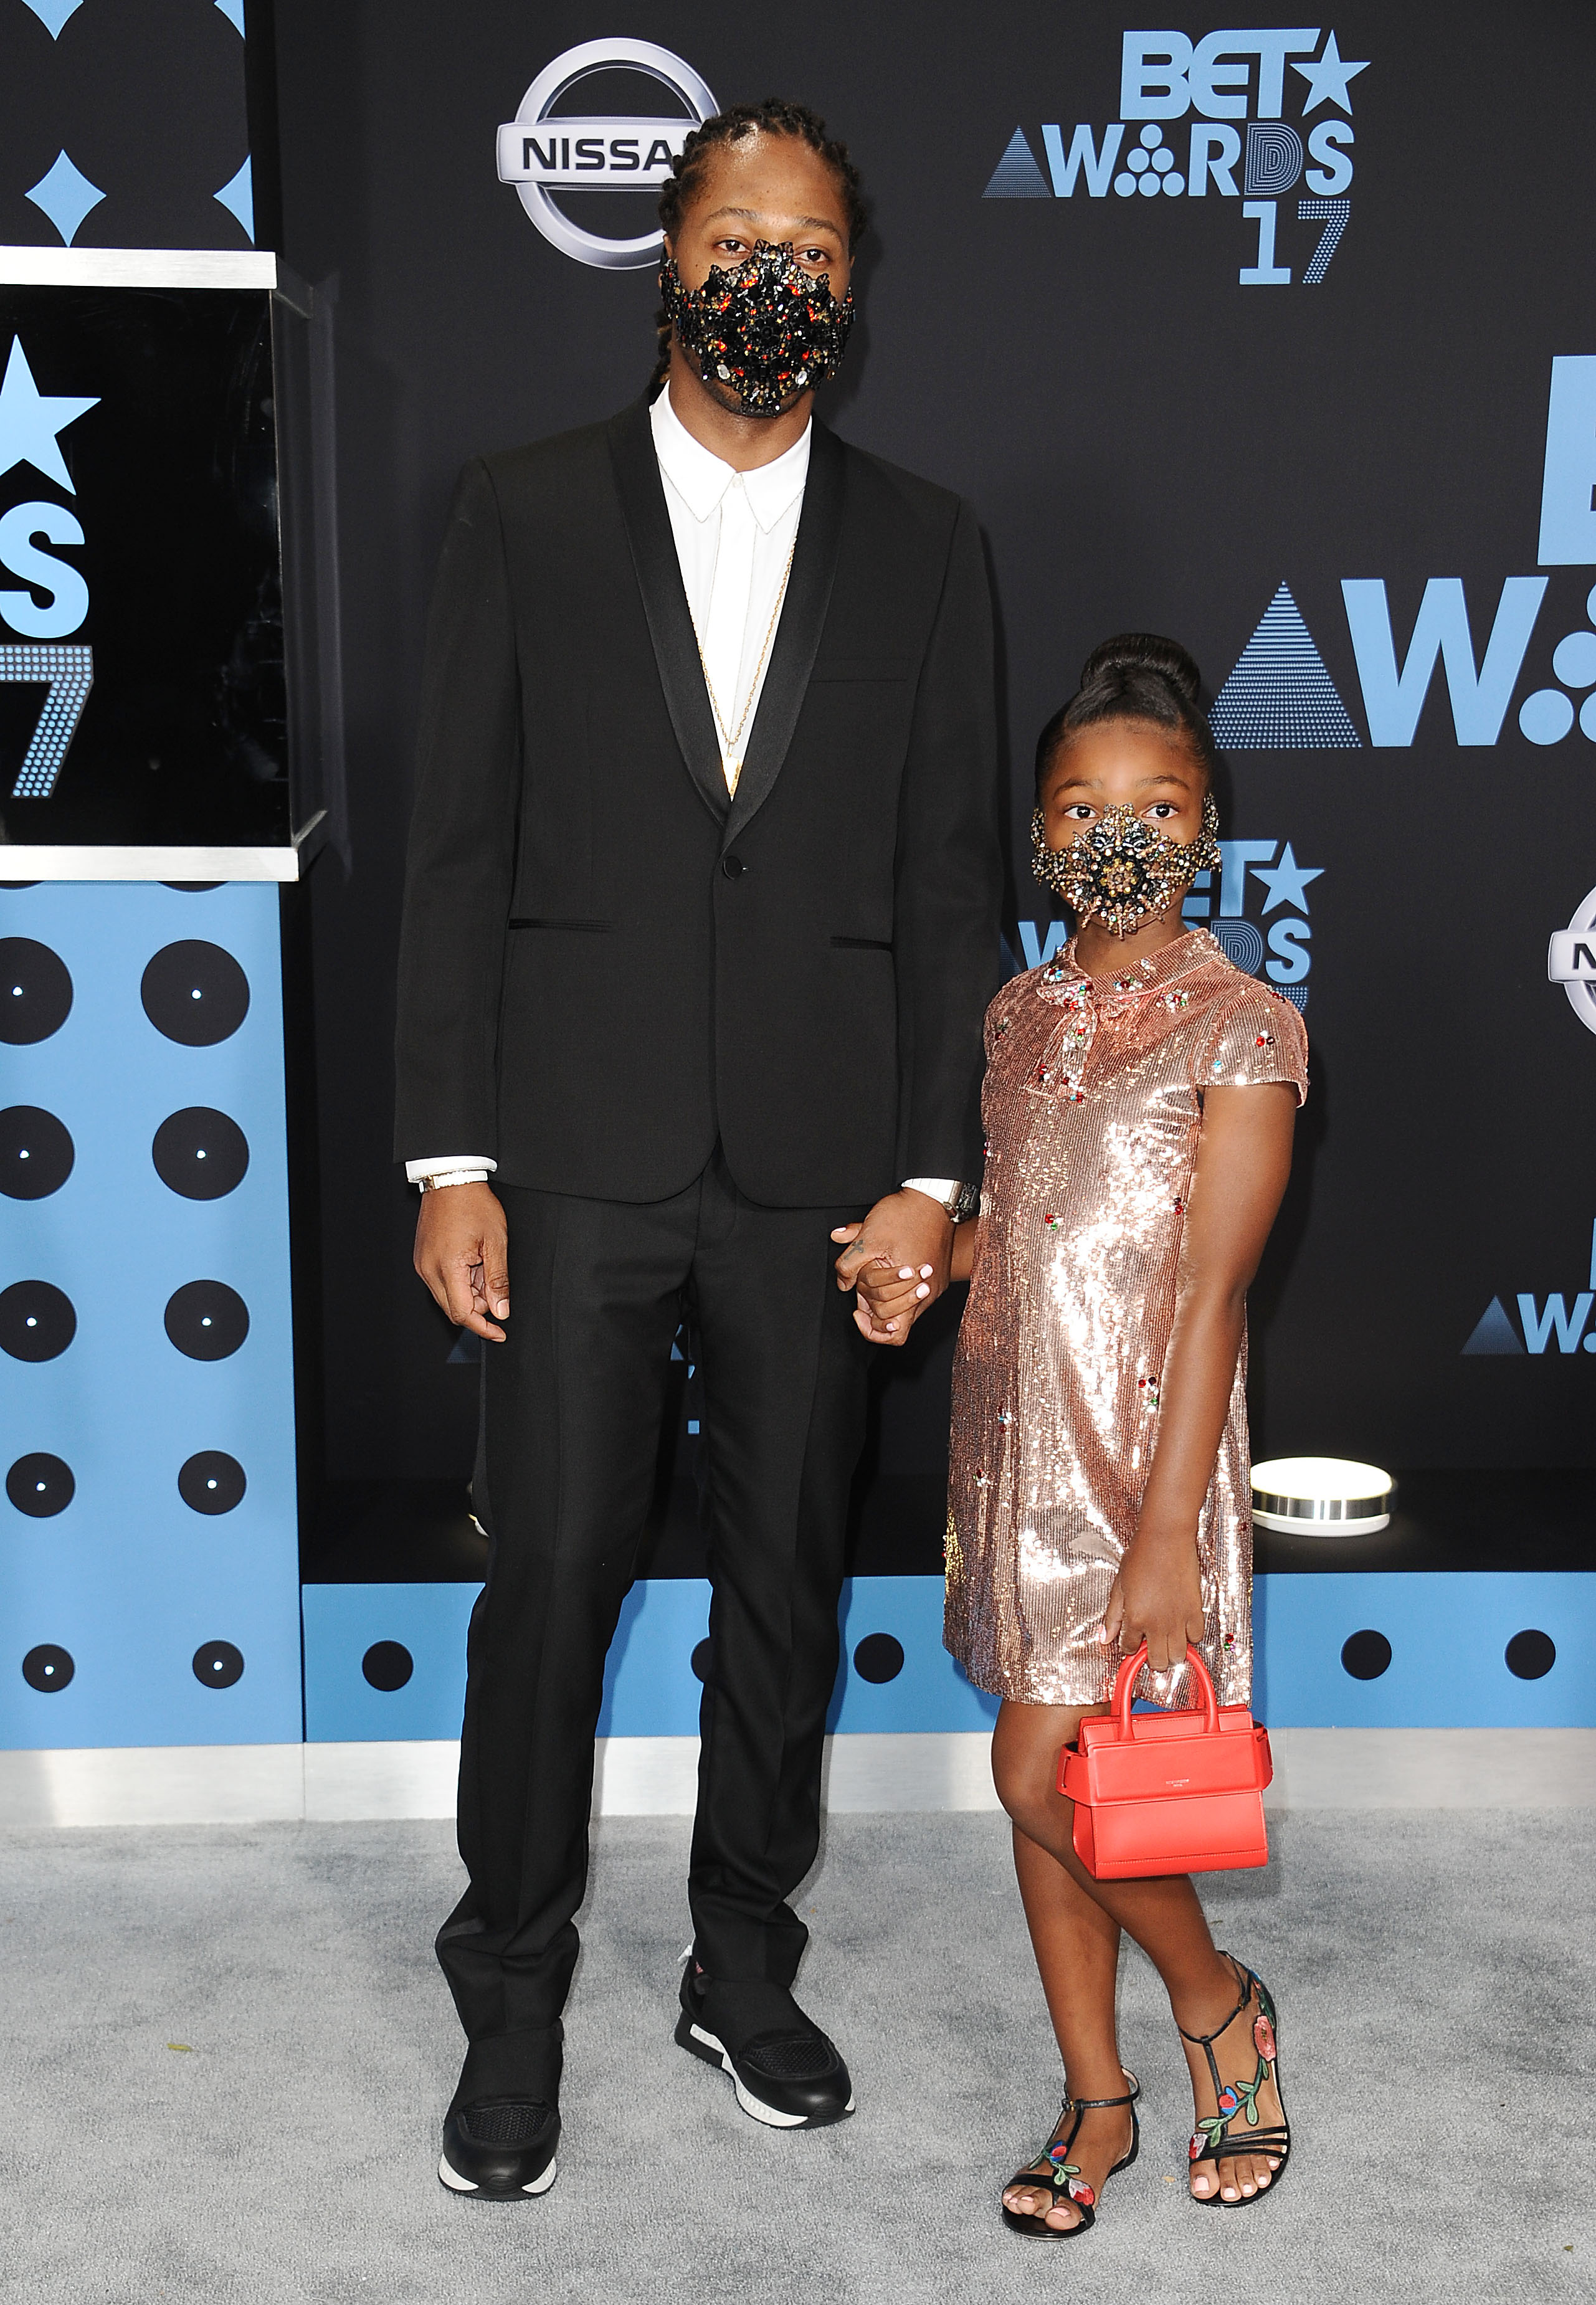 <p>With Beyonce on maternity leave, the annual BET Awards in Los Angeles took a stylish step back until rapper Future hit the red carpet with his 8-year-old daughter Londyn Wilburn in matching masks.</p> <p>The bejewelled accessories could be a less than subtle nod to the performer's hit single Mask Off but presenting a confronting image in the fashion stakes.</p> <p>Masks have appeared on the runway at Margiela in Paris and last year Toni Maticevski stunned the Australian Fashion Week front row with models wearing mouth covers but this is a first in father and daughter looks.</p> <p>Offering more conventional looks in the style stakes were Jada Pinkett-Smith in Alexandre Vauthier and Solange Knowles with striking Jennifer Fisher jewellery, on her hands rather than her face.  </p>